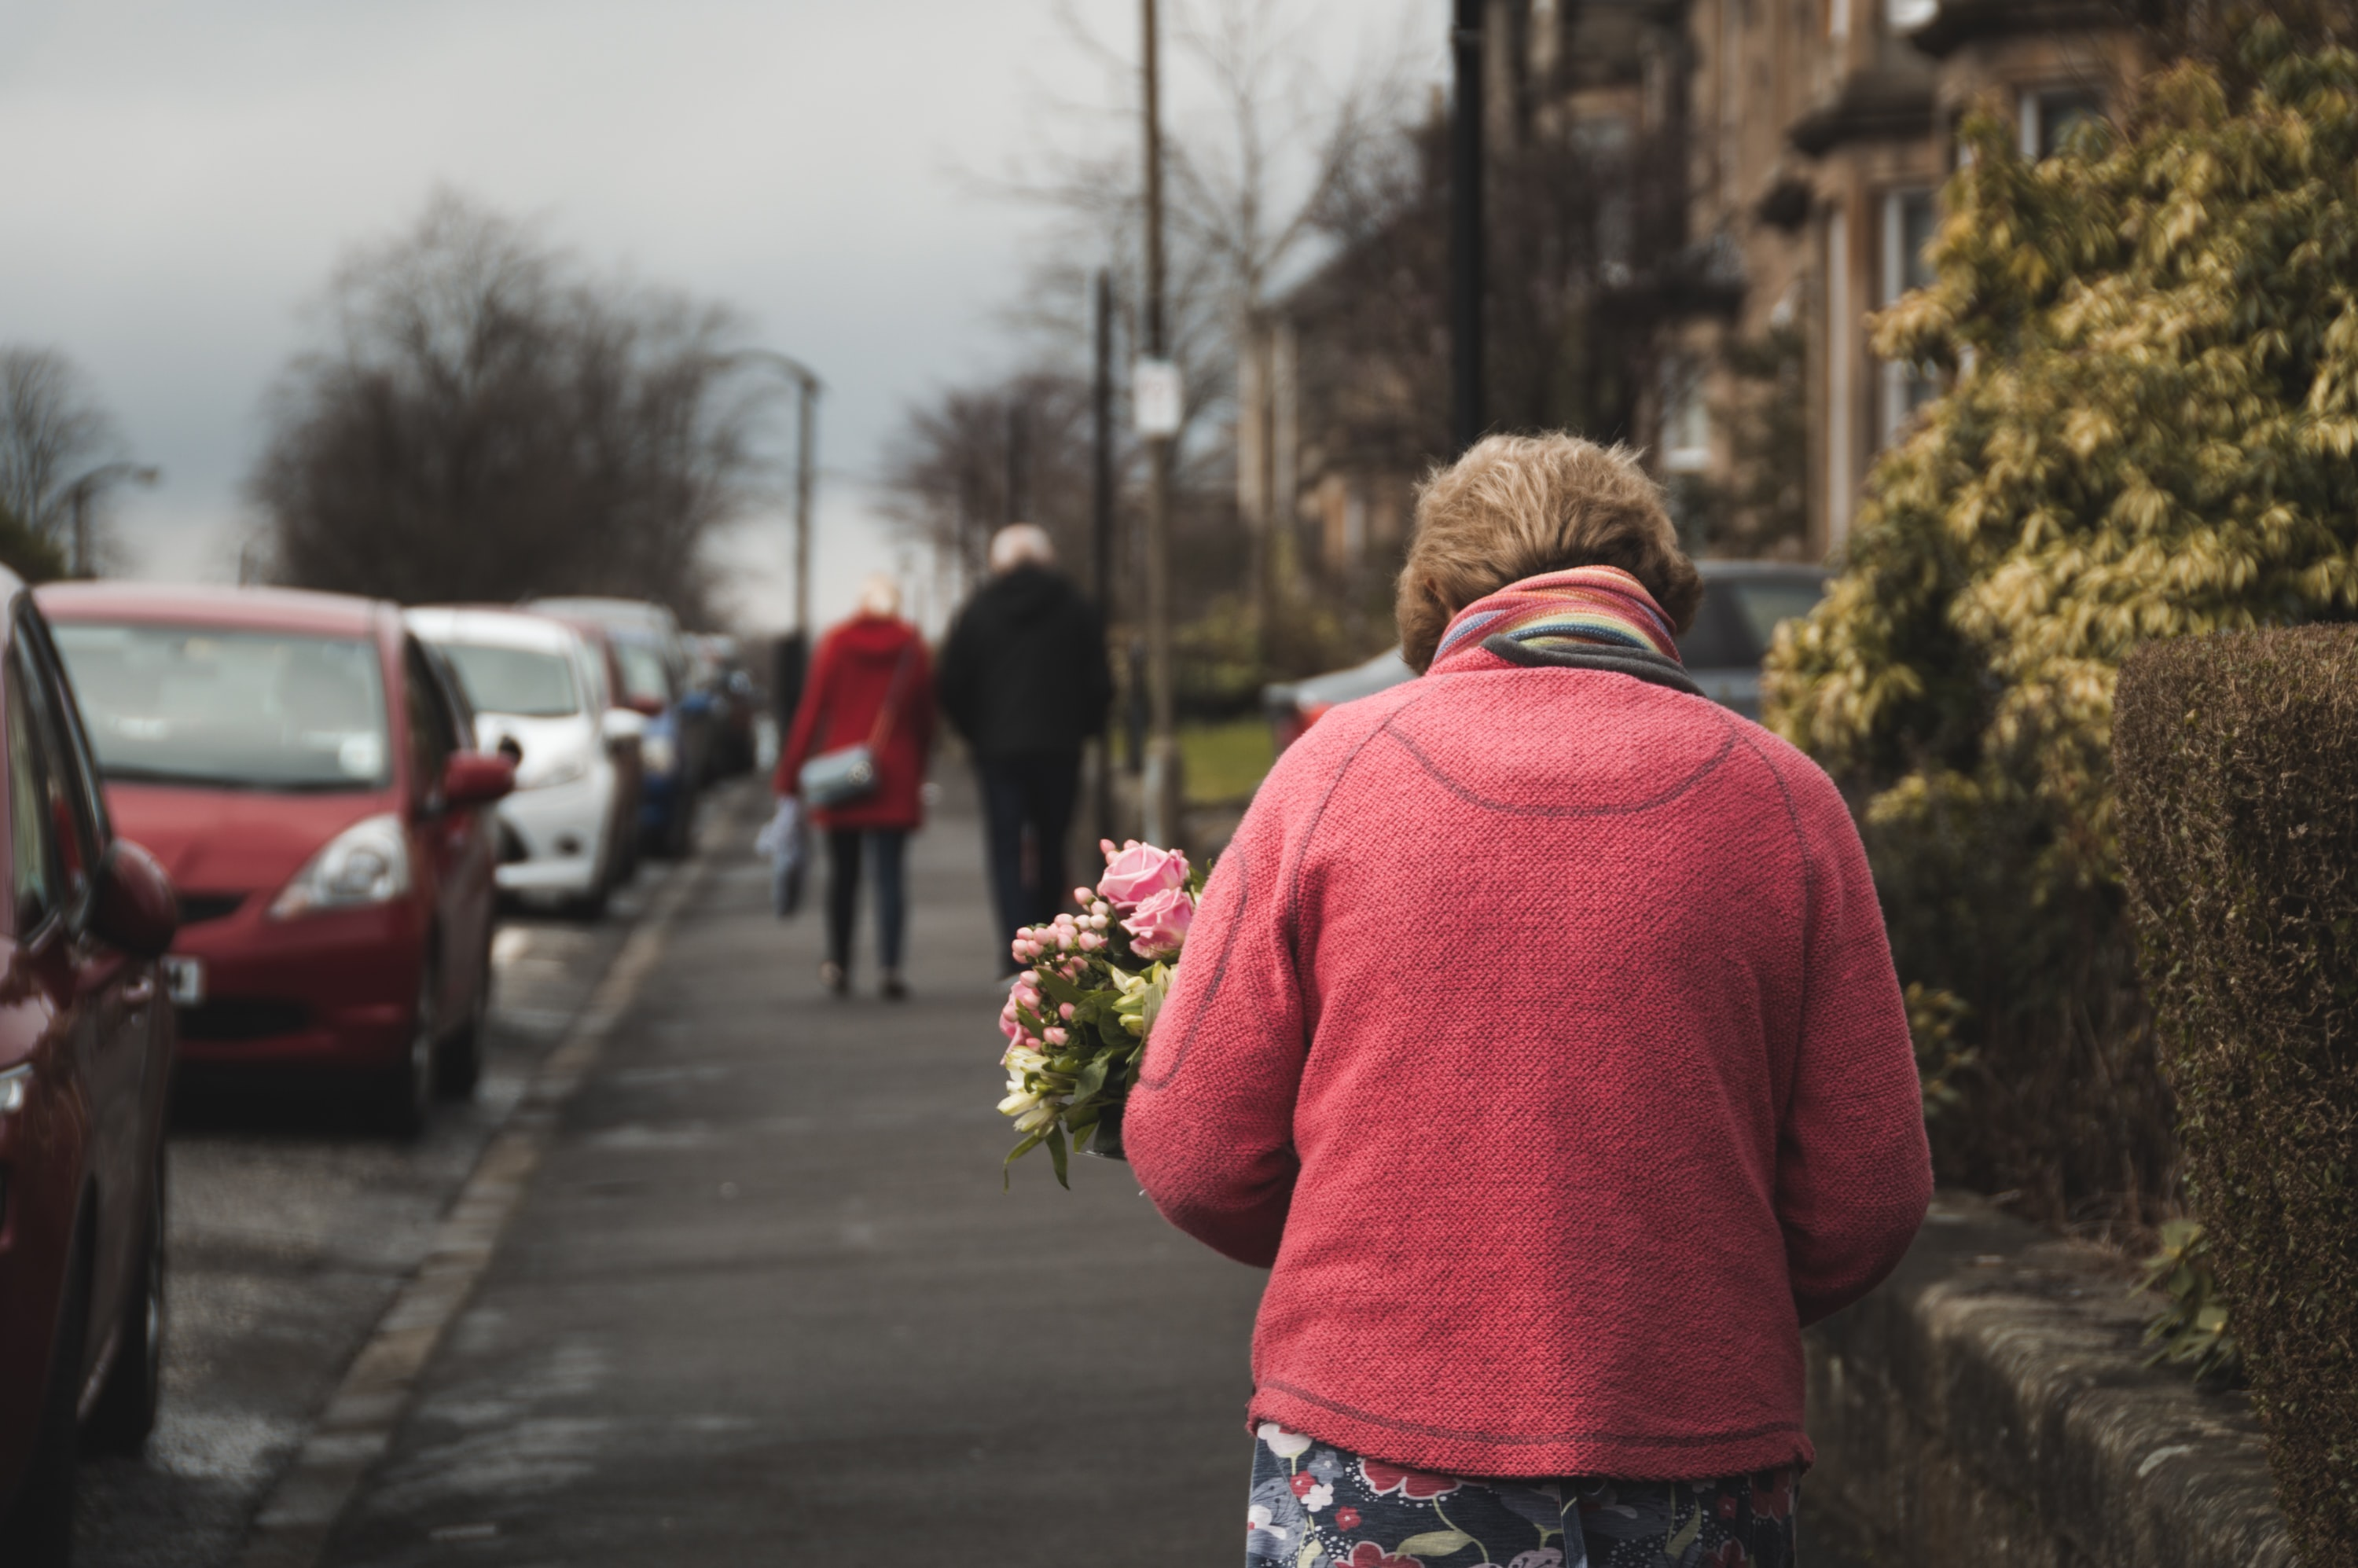 An elderly lady with a bouquet of flowers walking on a suburban sidewalk